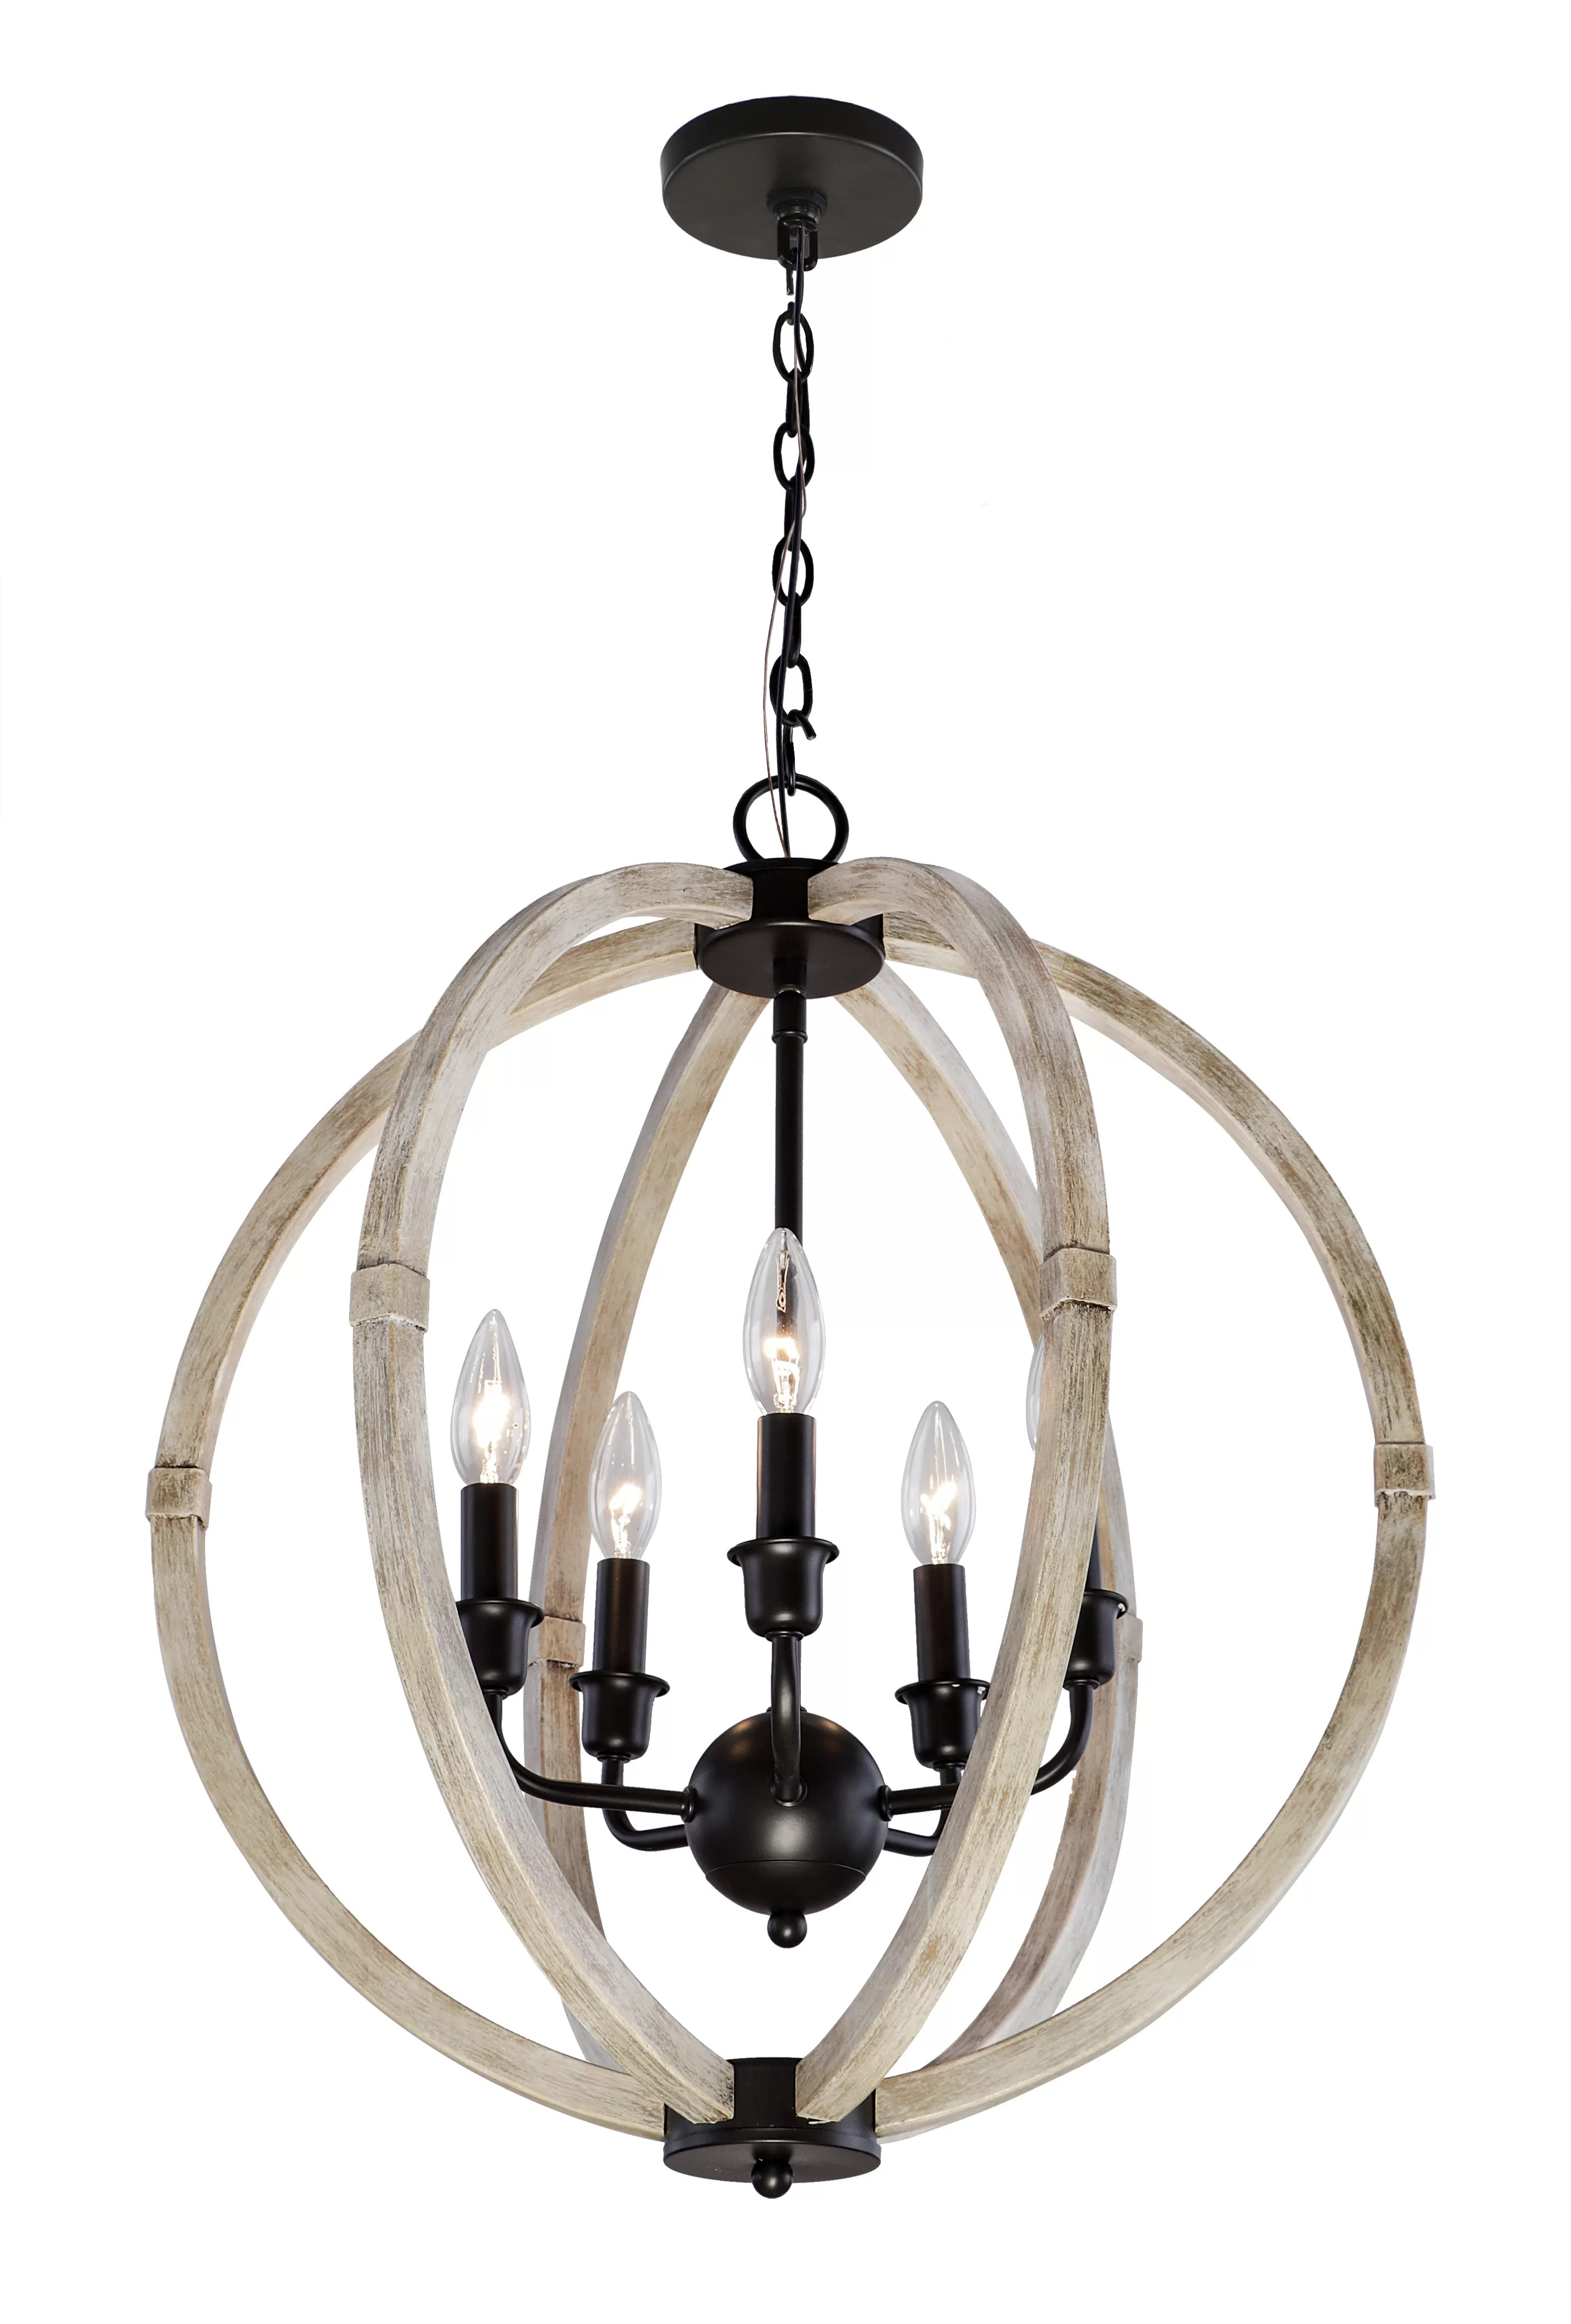 Foundry Select Shelby 5 Light Candle Style Globe Chandelier